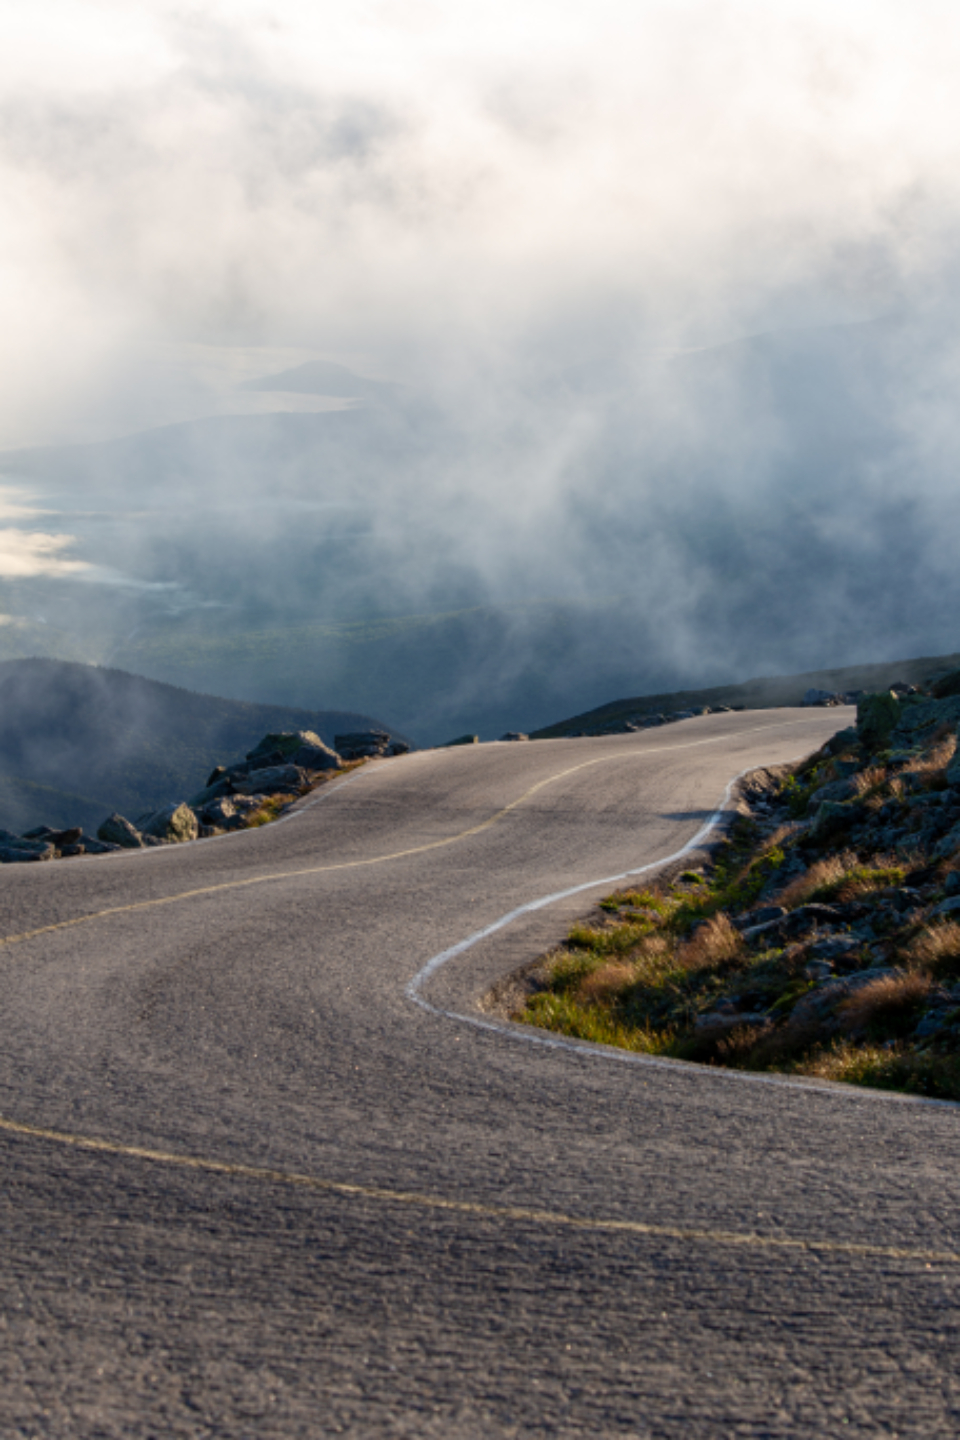 misty mountain road curvy fog clouds sky driving cliffs nature landscape travel route hills